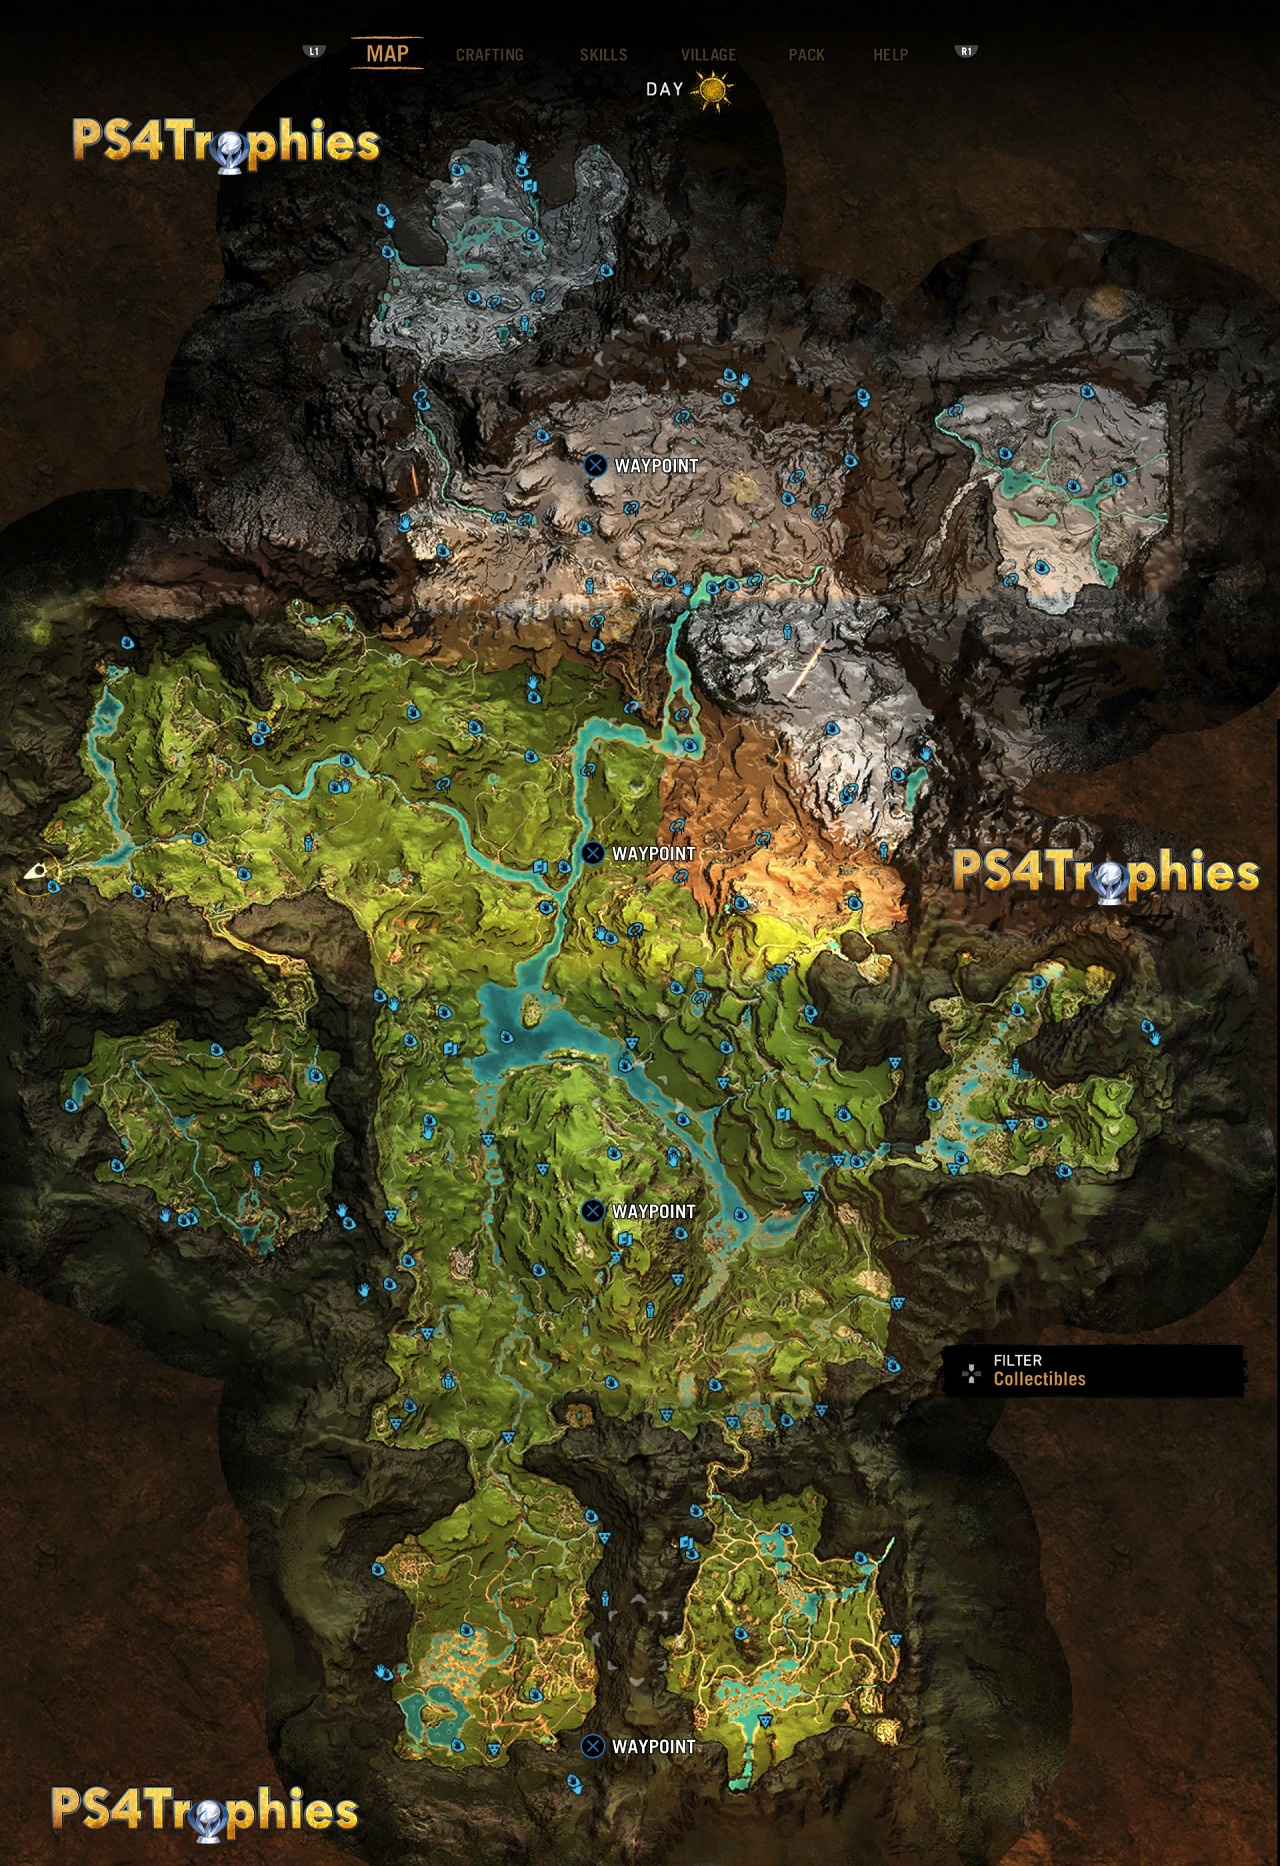 Man Cave Far Cry 5 Walkthrough : Far cry primal collectible location guide for daysha hands